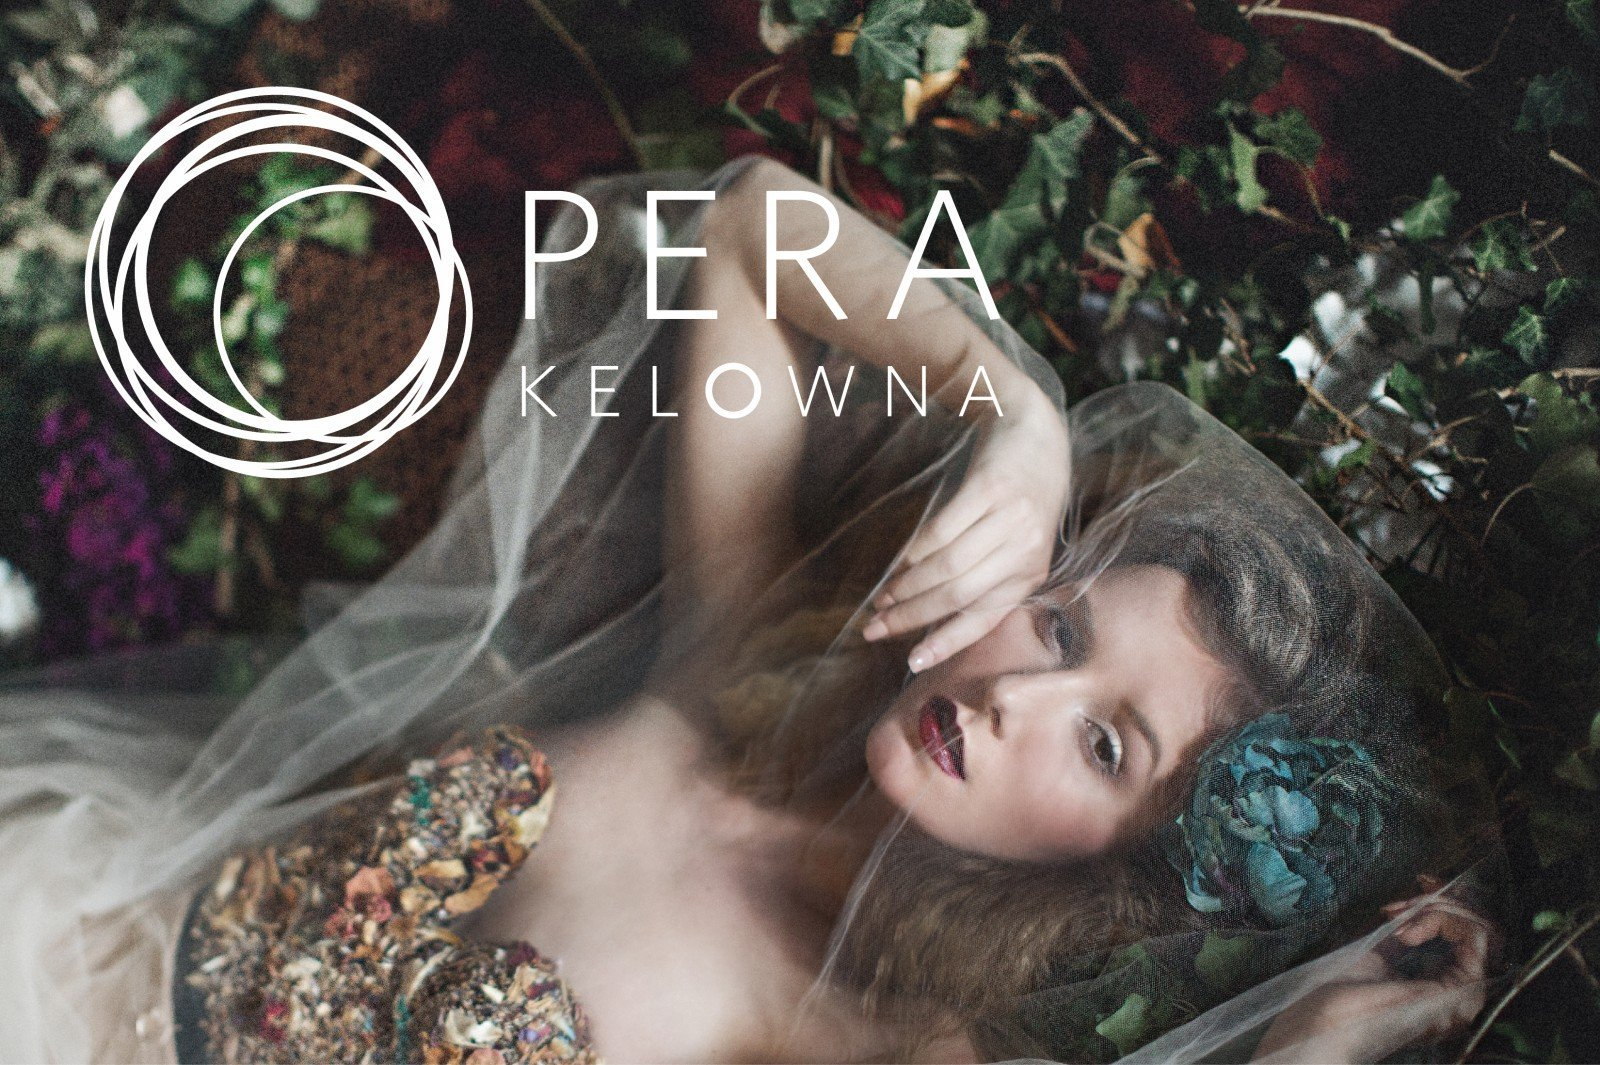 Read more on Hiiliting the Arts with Opera Kelowna